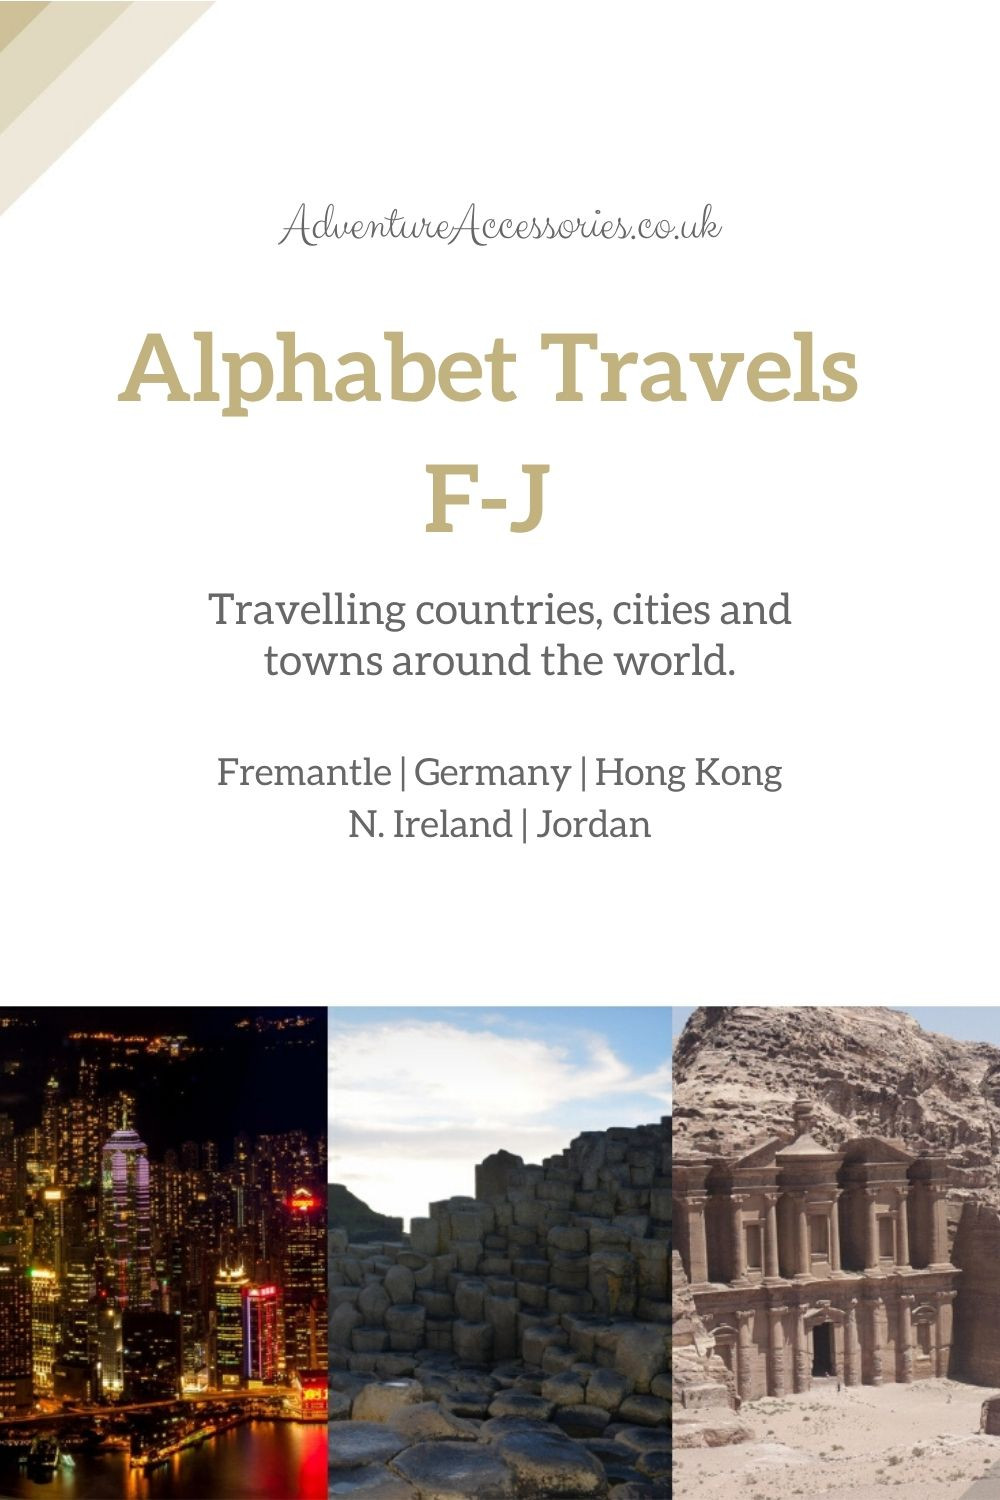 Pinterest - Alphabet Travel Series F to J. Adventure Accessories